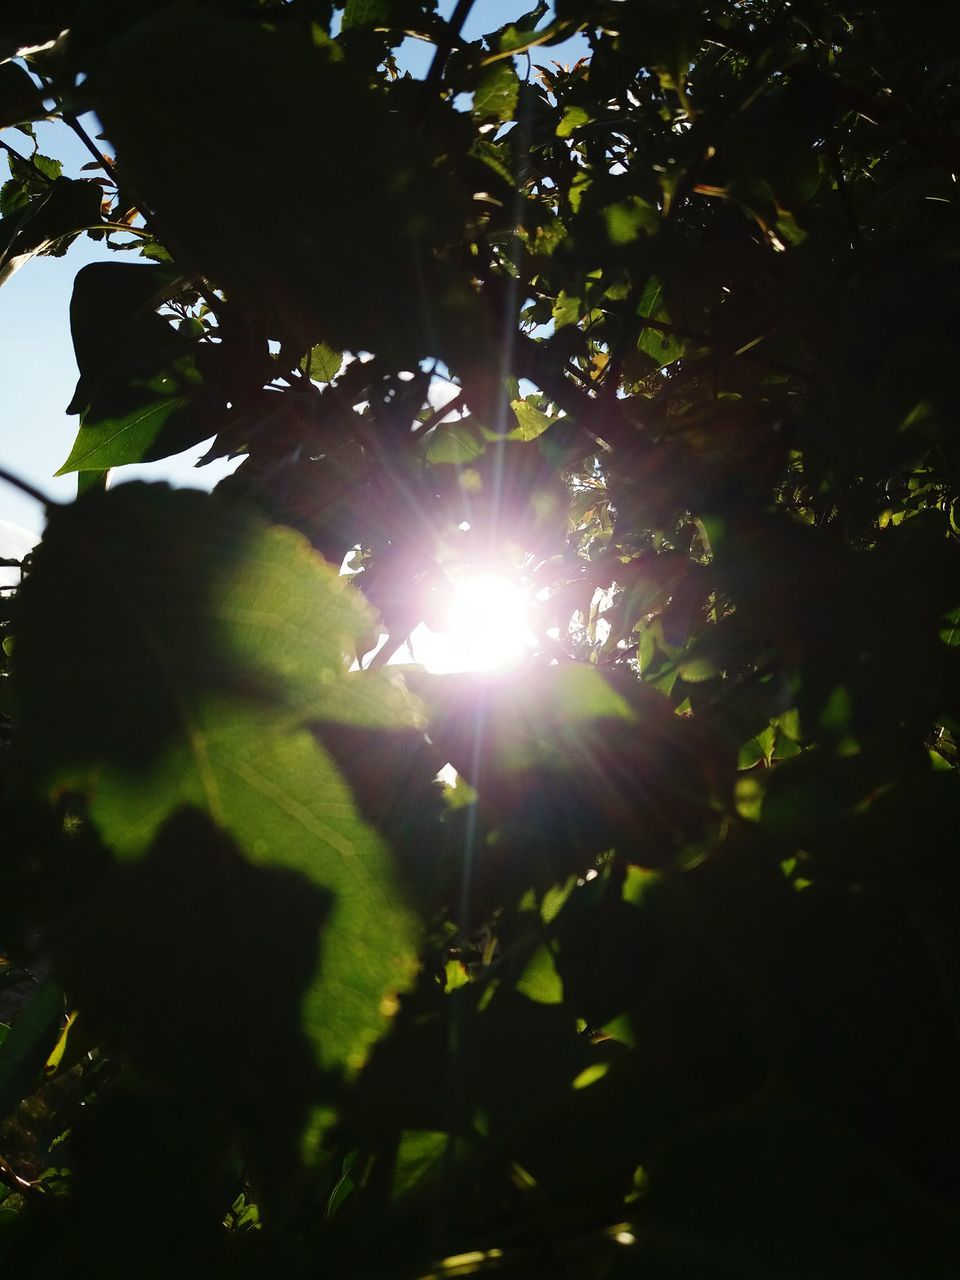 sun, growth, sunlight, lens flare, nature, sunbeam, tree, beauty in nature, outdoors, no people, plant, leaf, sunshine, branch, day, freshness, close-up, sky